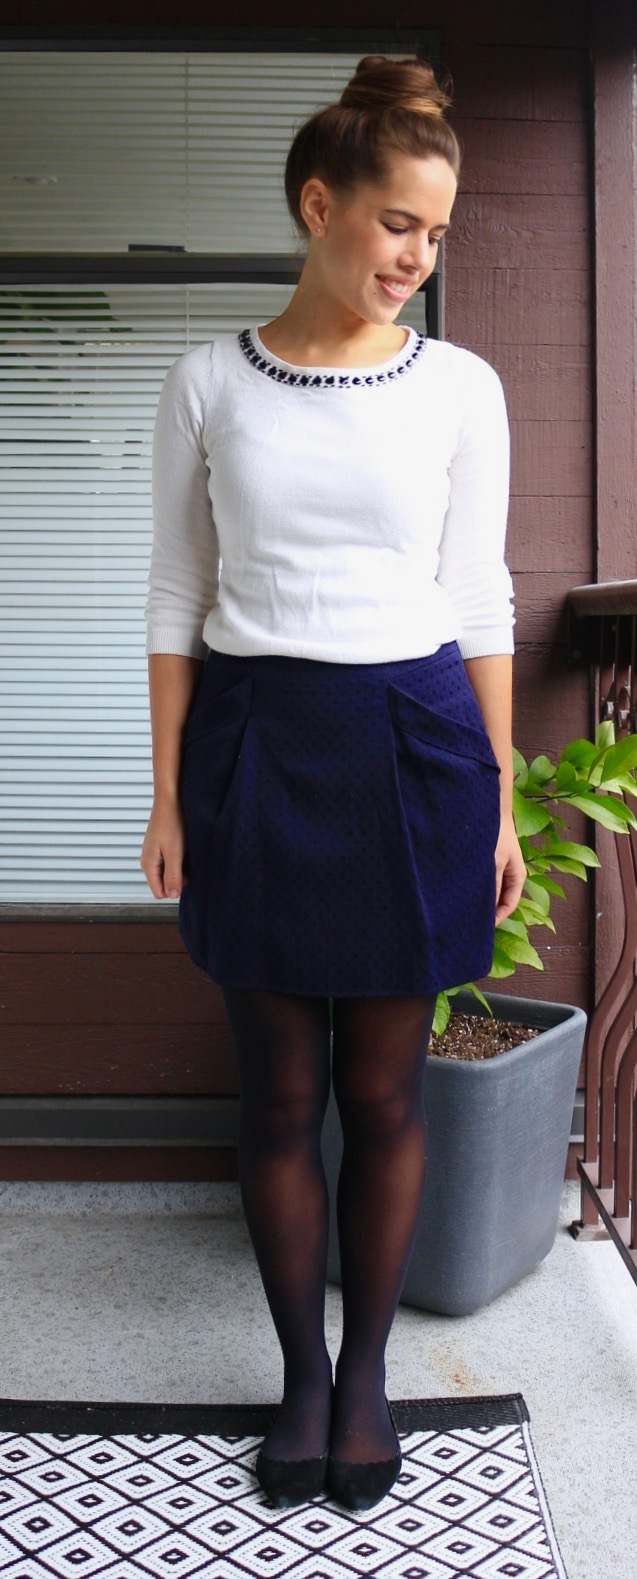 Jules in Flats - Embellished Collar Sweater & Mini Skirt